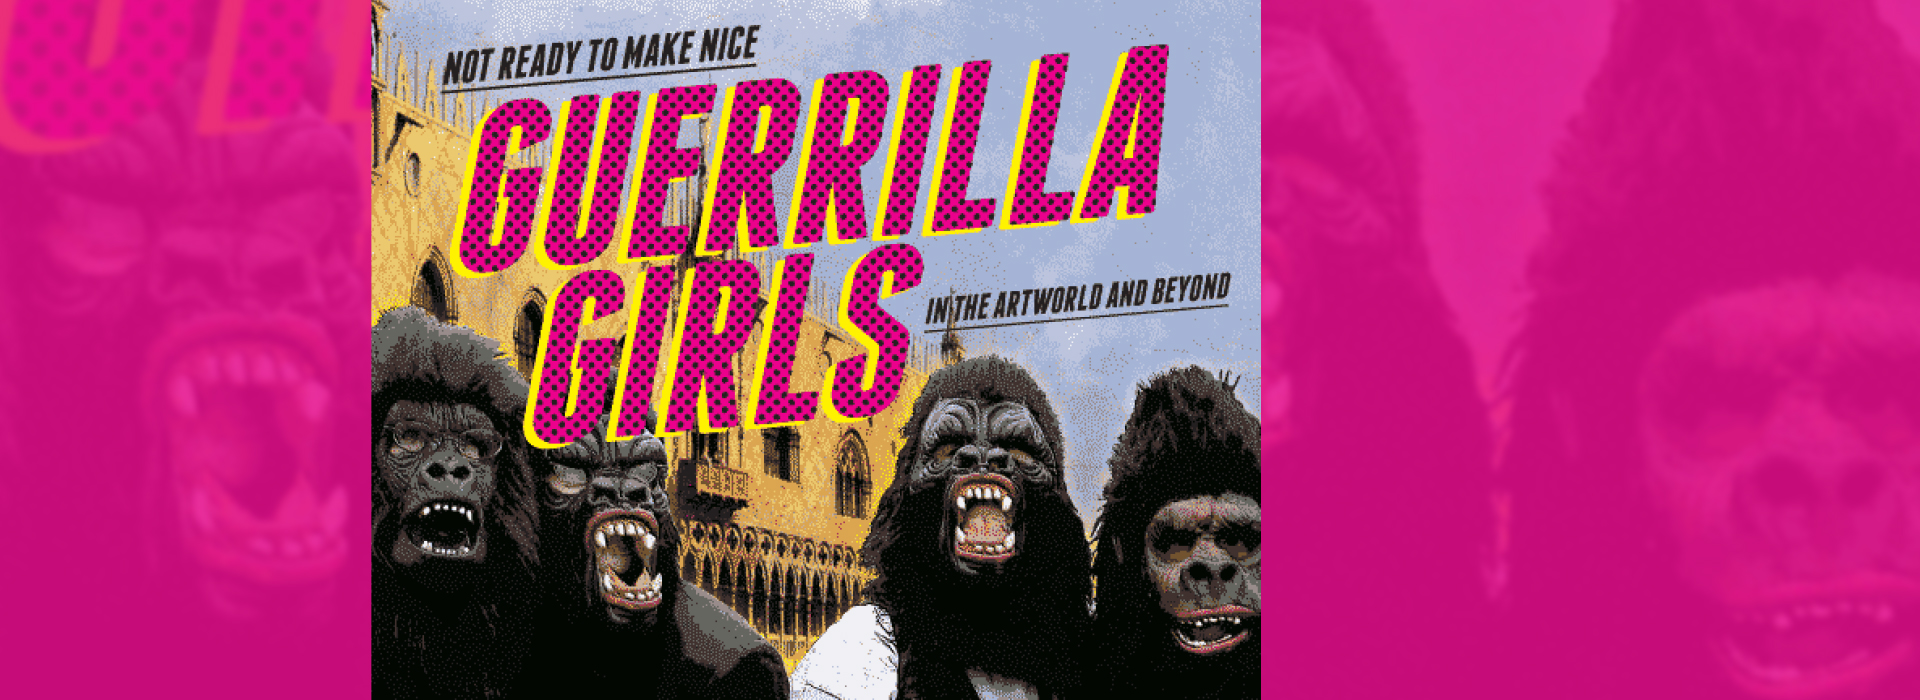 Guerrilla Girls: Artwork of famous feminist art collective gives viewers the backstory